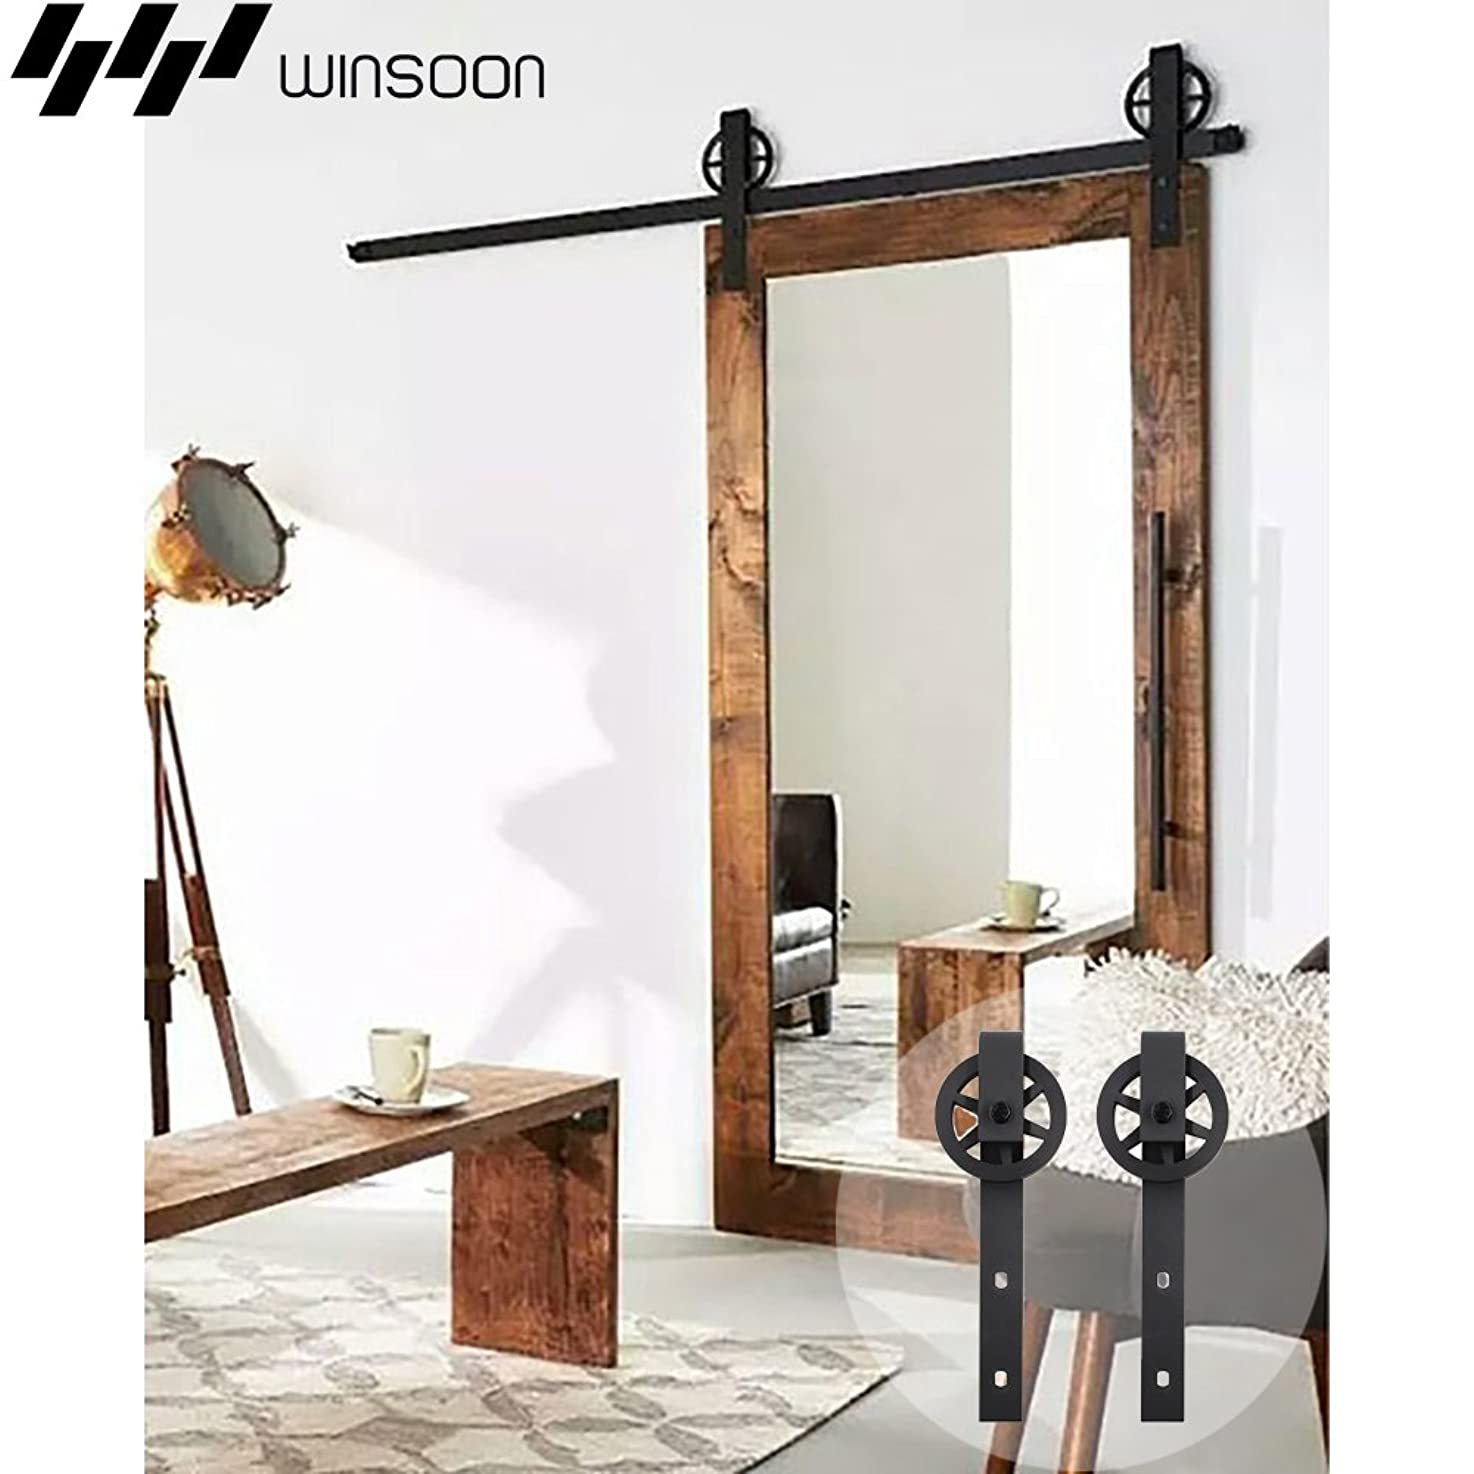 WINSOON Sliding Barn Door Hardware 17ft Track Single Door Kit Low Ceiling for Window Cabinet TV Stand, I Shape Hooks uihdmwpbpywmf7